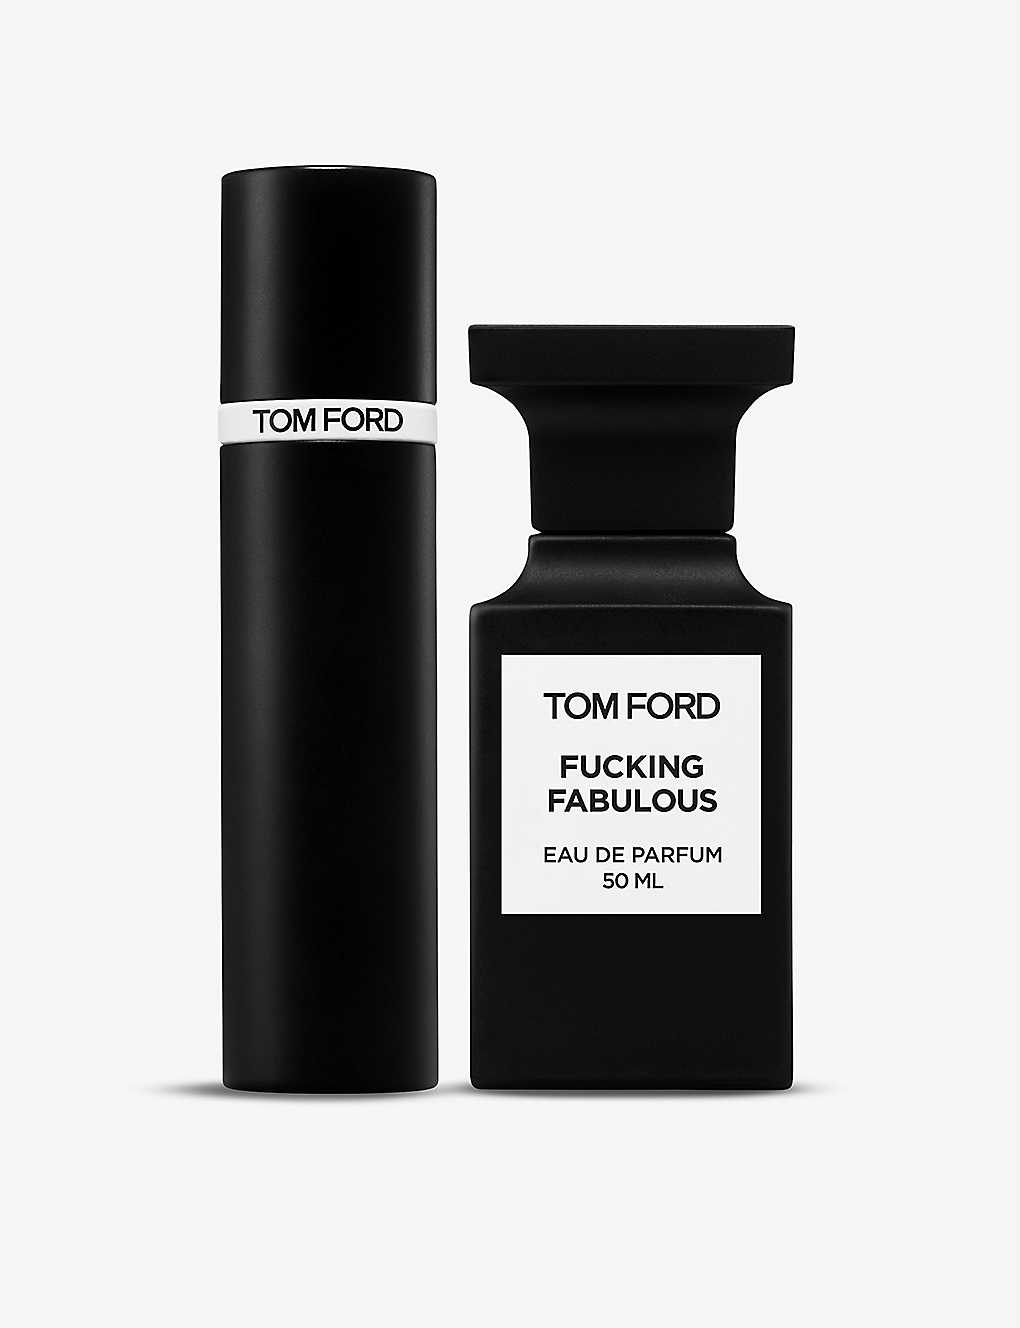 TOM FORD: Fabulous collection